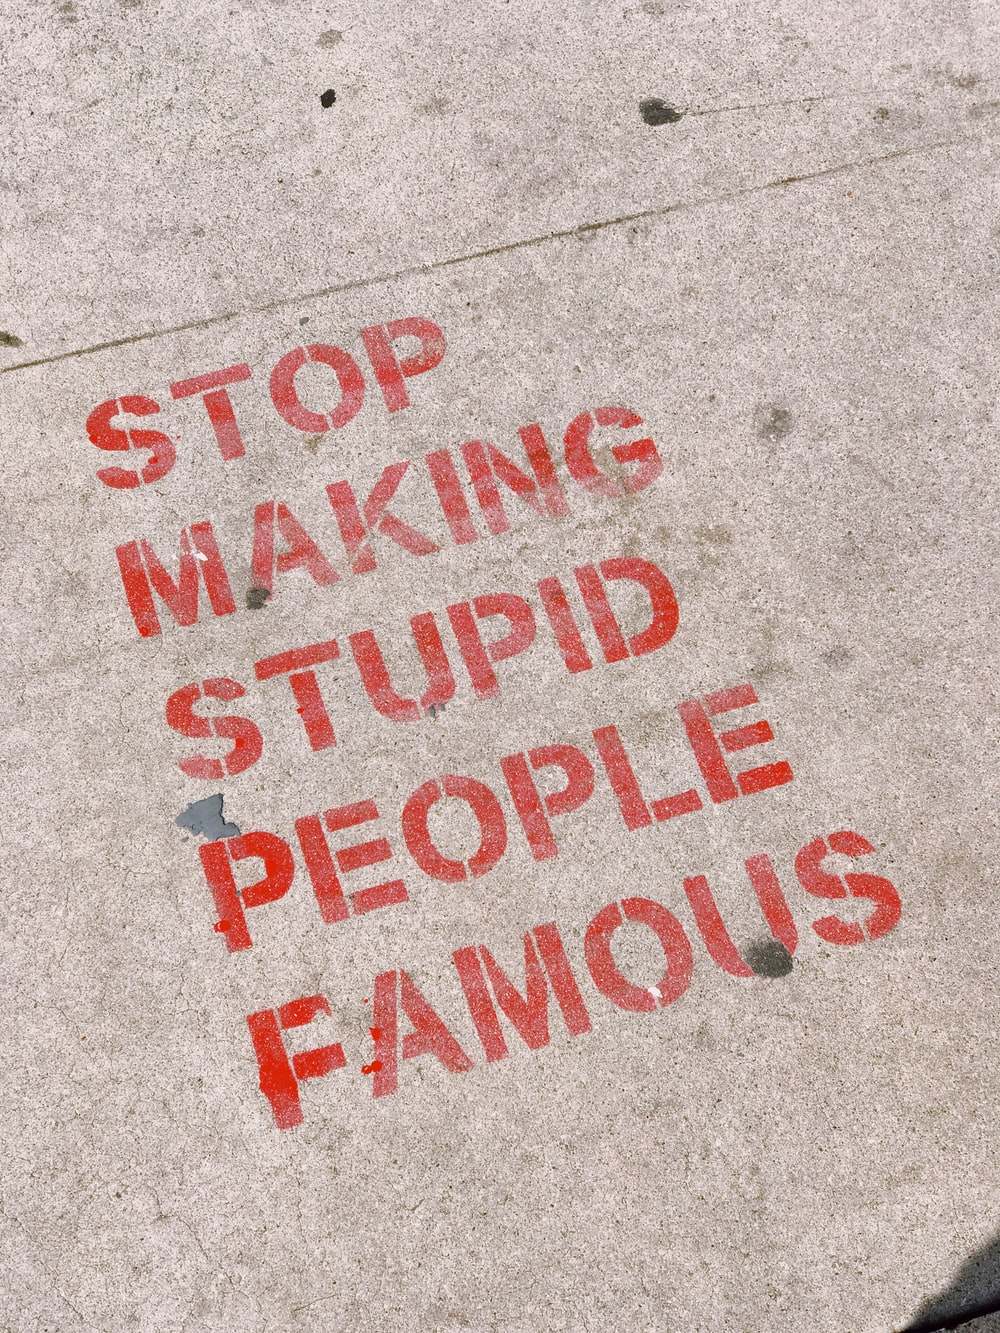 stop making stupid people famous signage